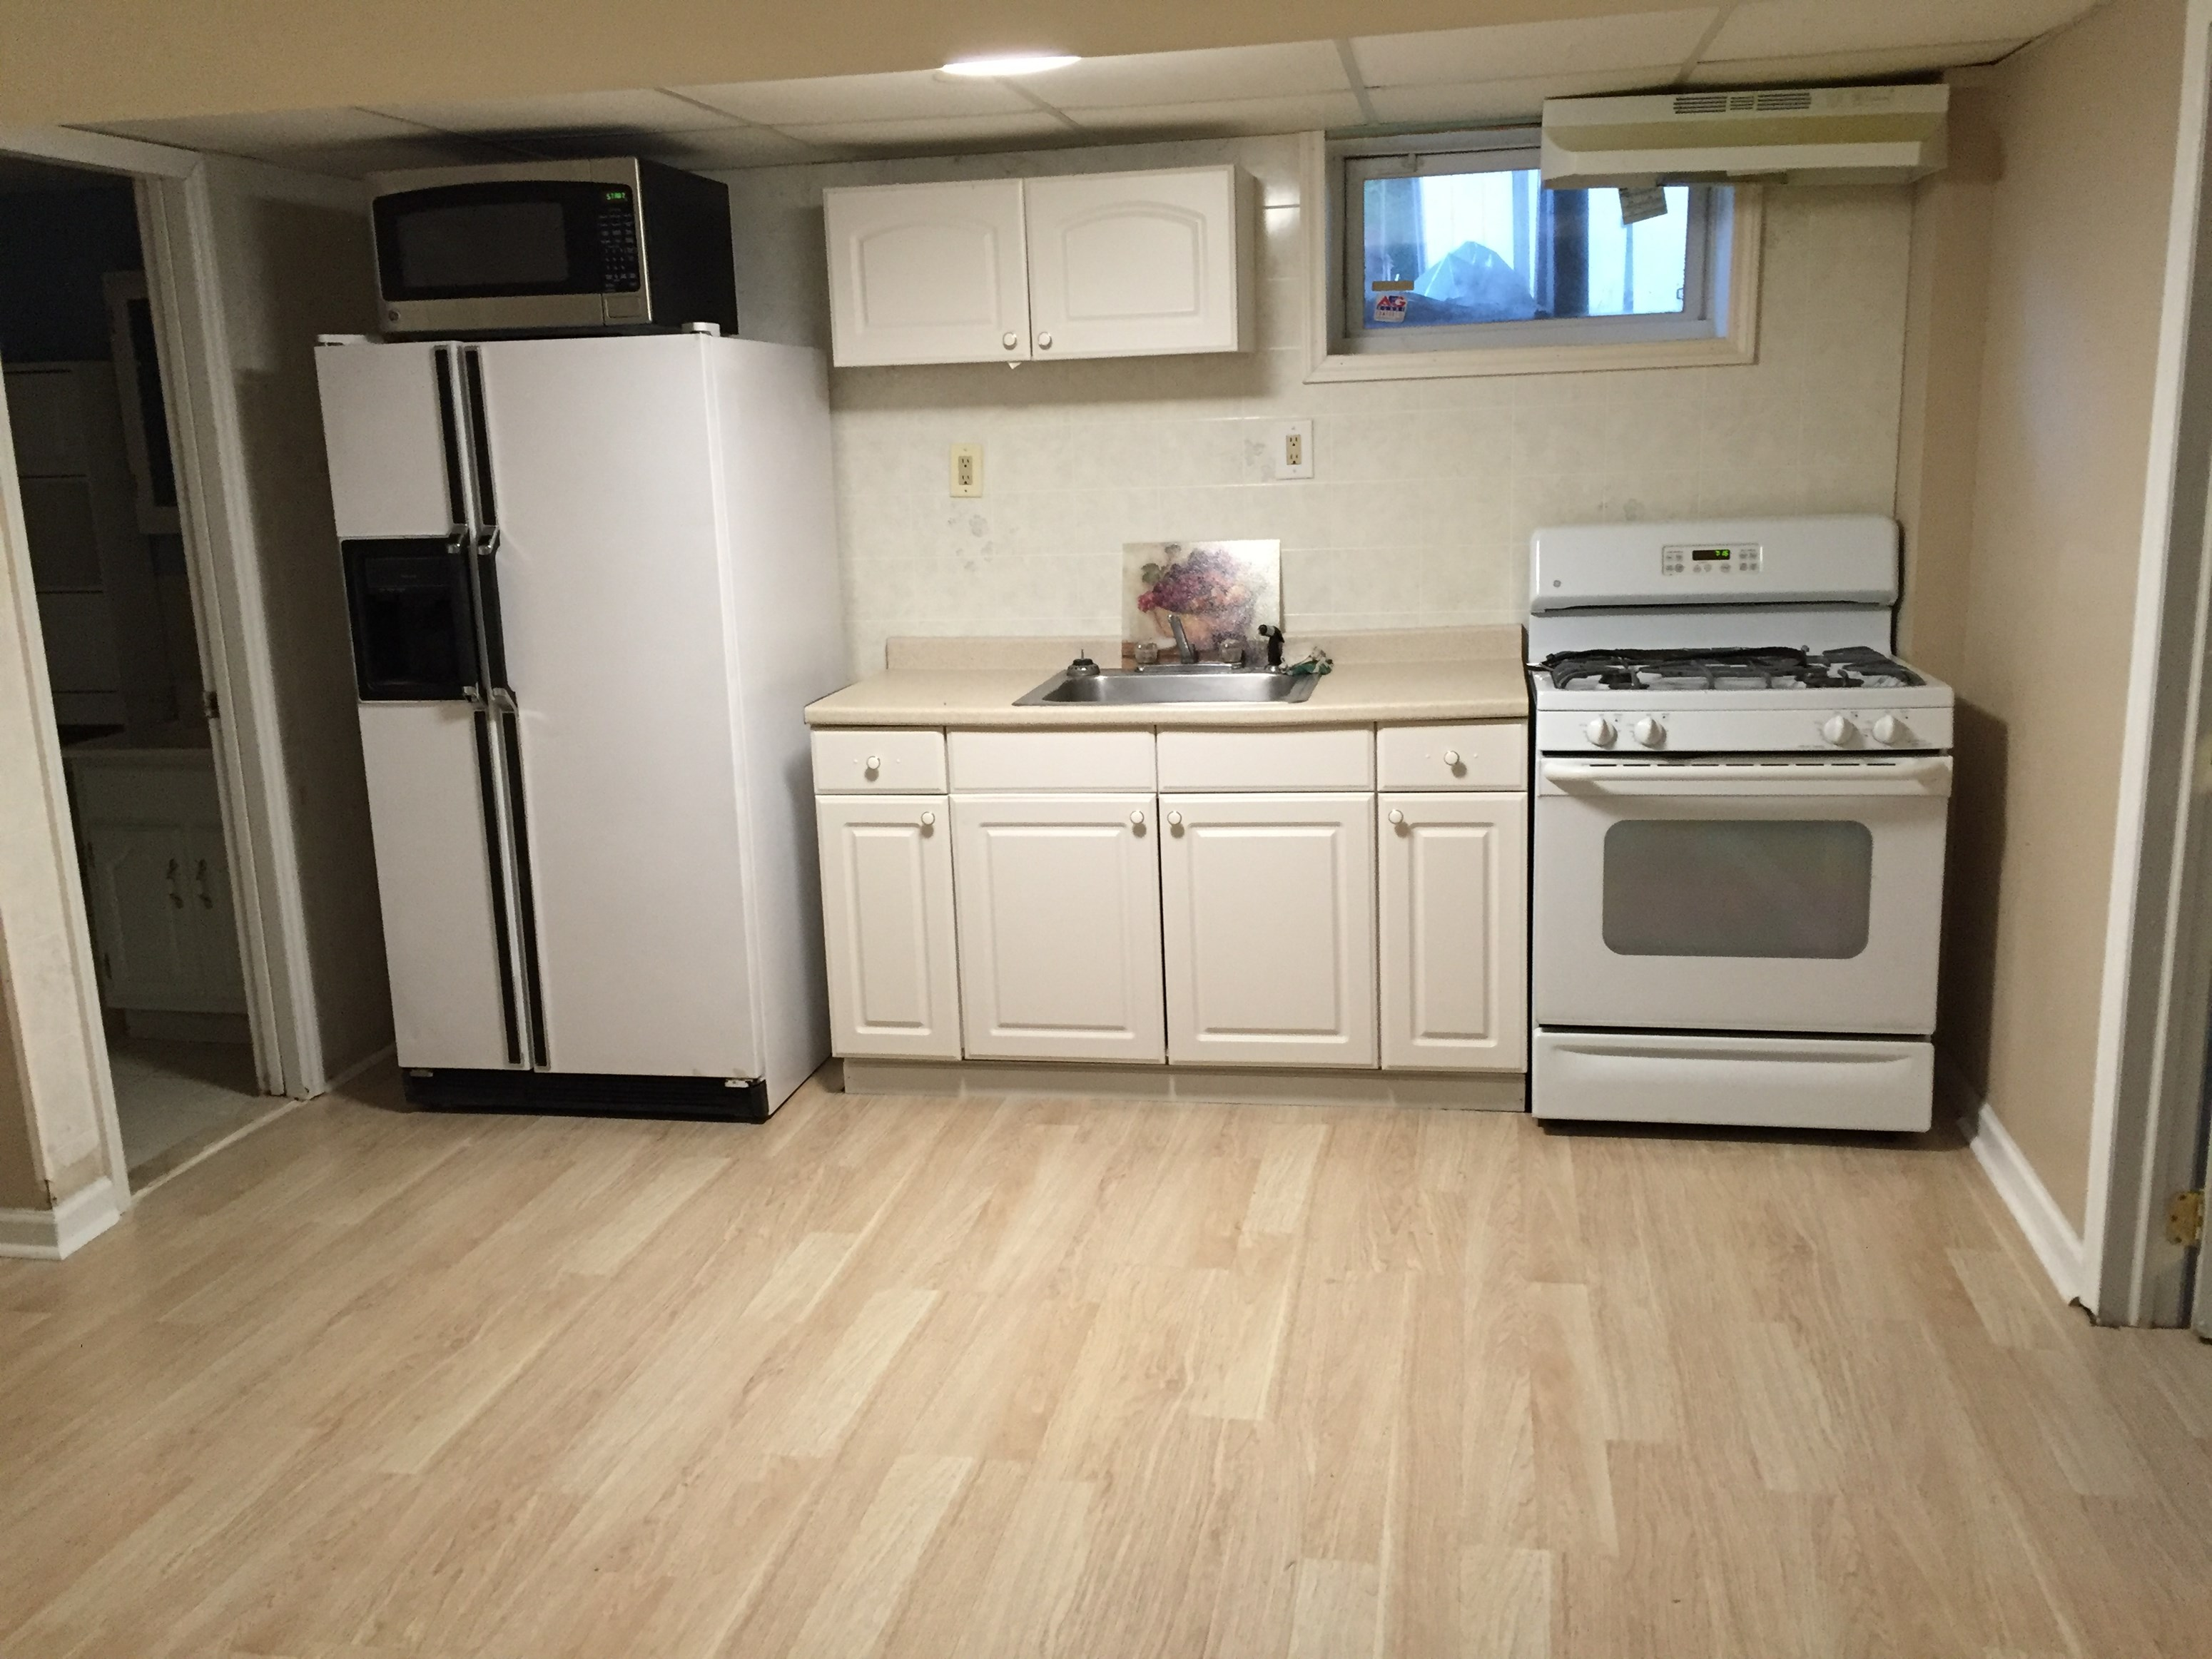 Brand New Apt Large 1 1/2 Bedroom Apt All Utilities Included NEAR EDISON  TRAIN